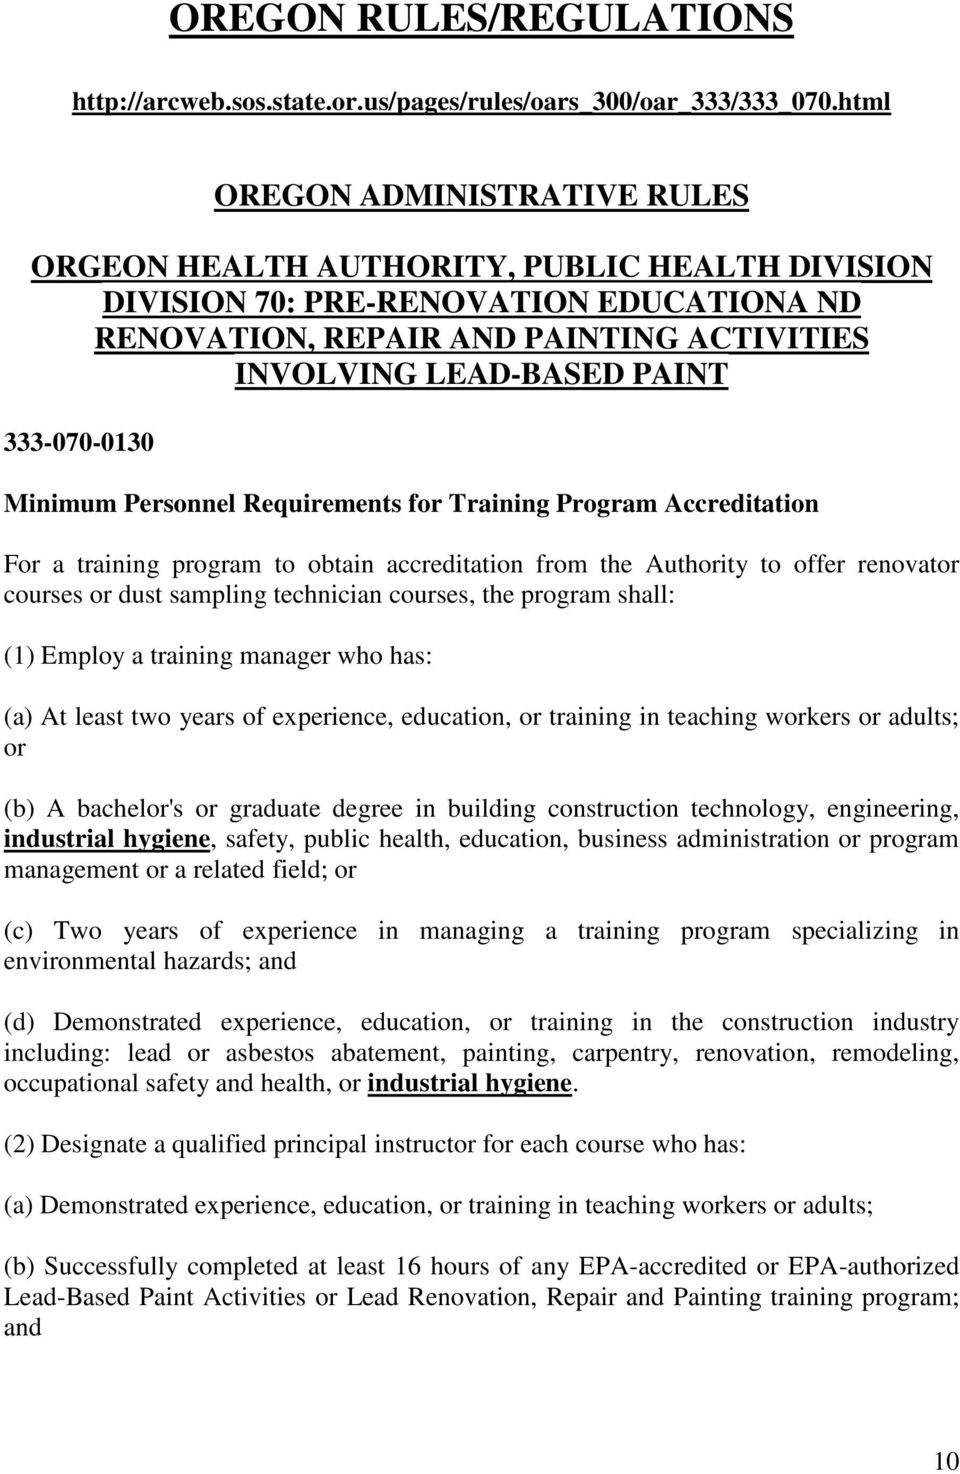 333-070-0130 Minimum Personnel Requirements for Training Program Accreditation For a training program to obtain accreditation from the Authority to offer renovator courses or dust sampling technician